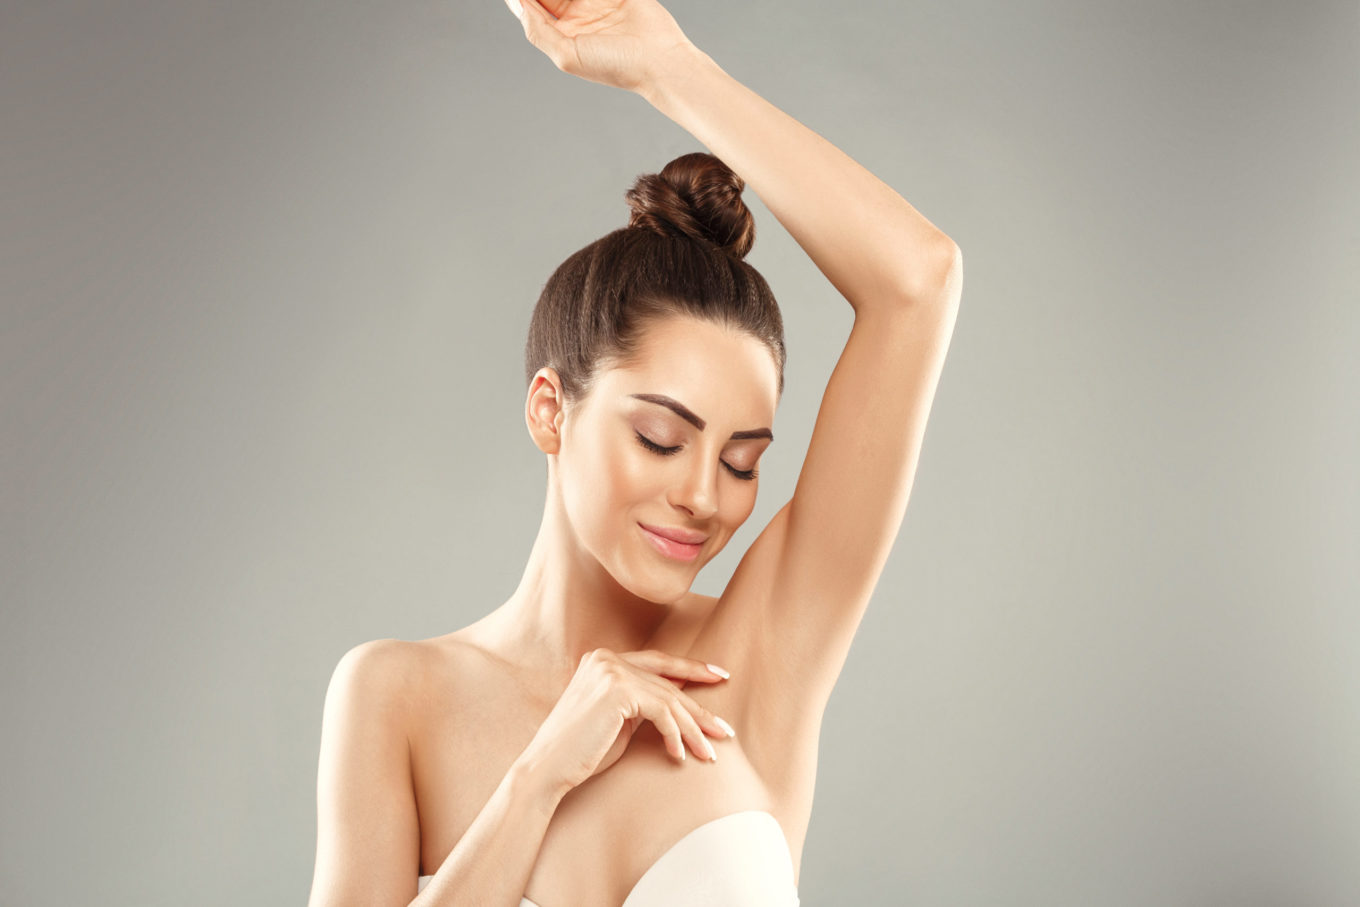 Ditch the Razor: Get Inmode Triton Laser Hair Removal